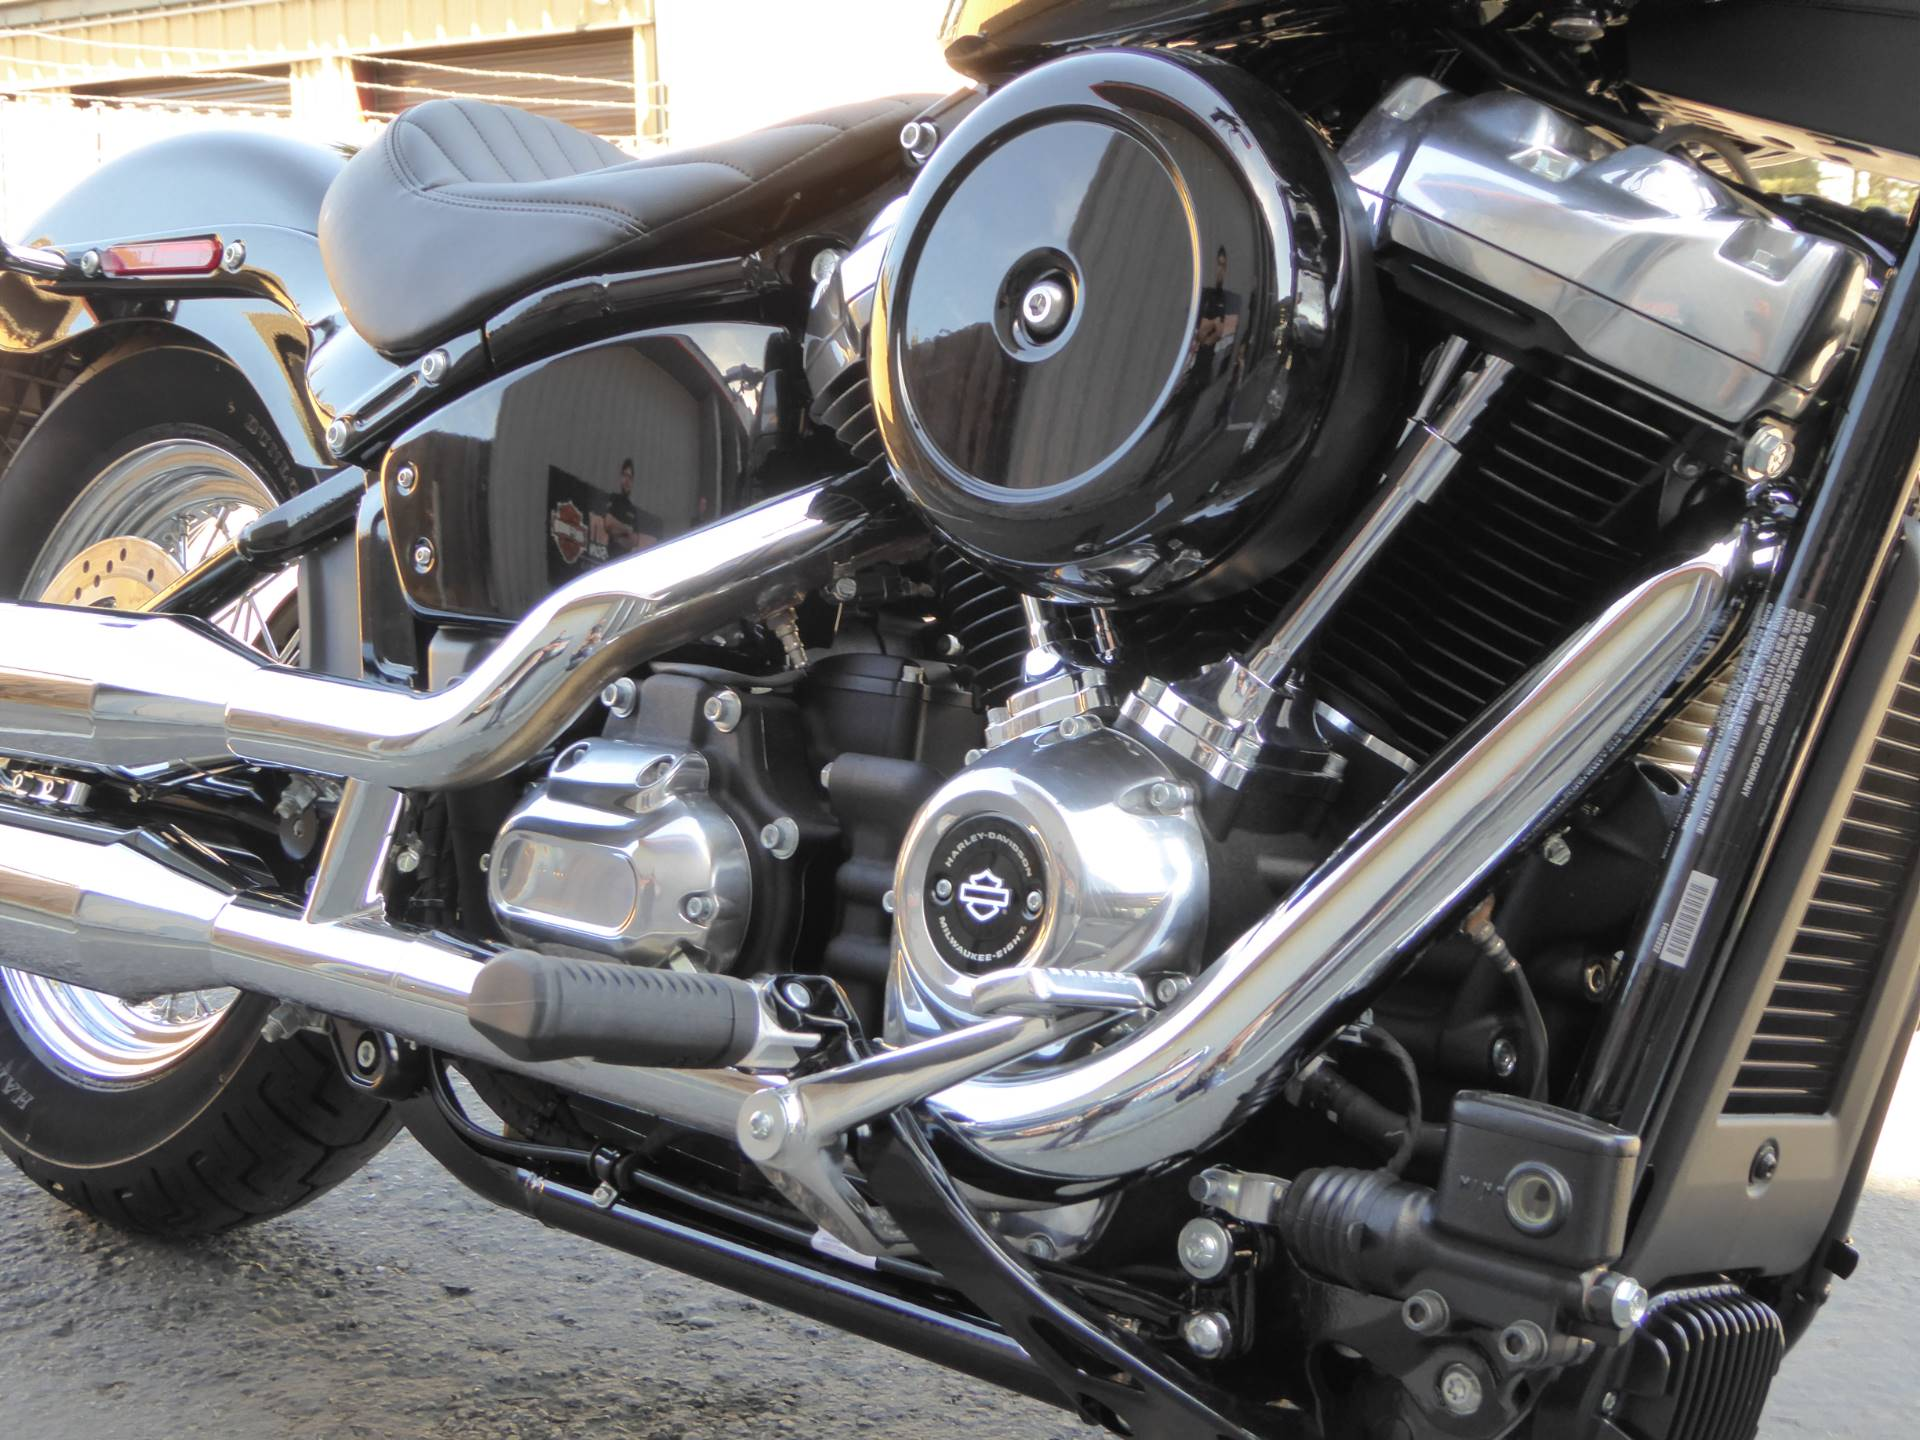 2021 Harley-Davidson SOFTAIL STANDARD in Cotati, California - Photo 6